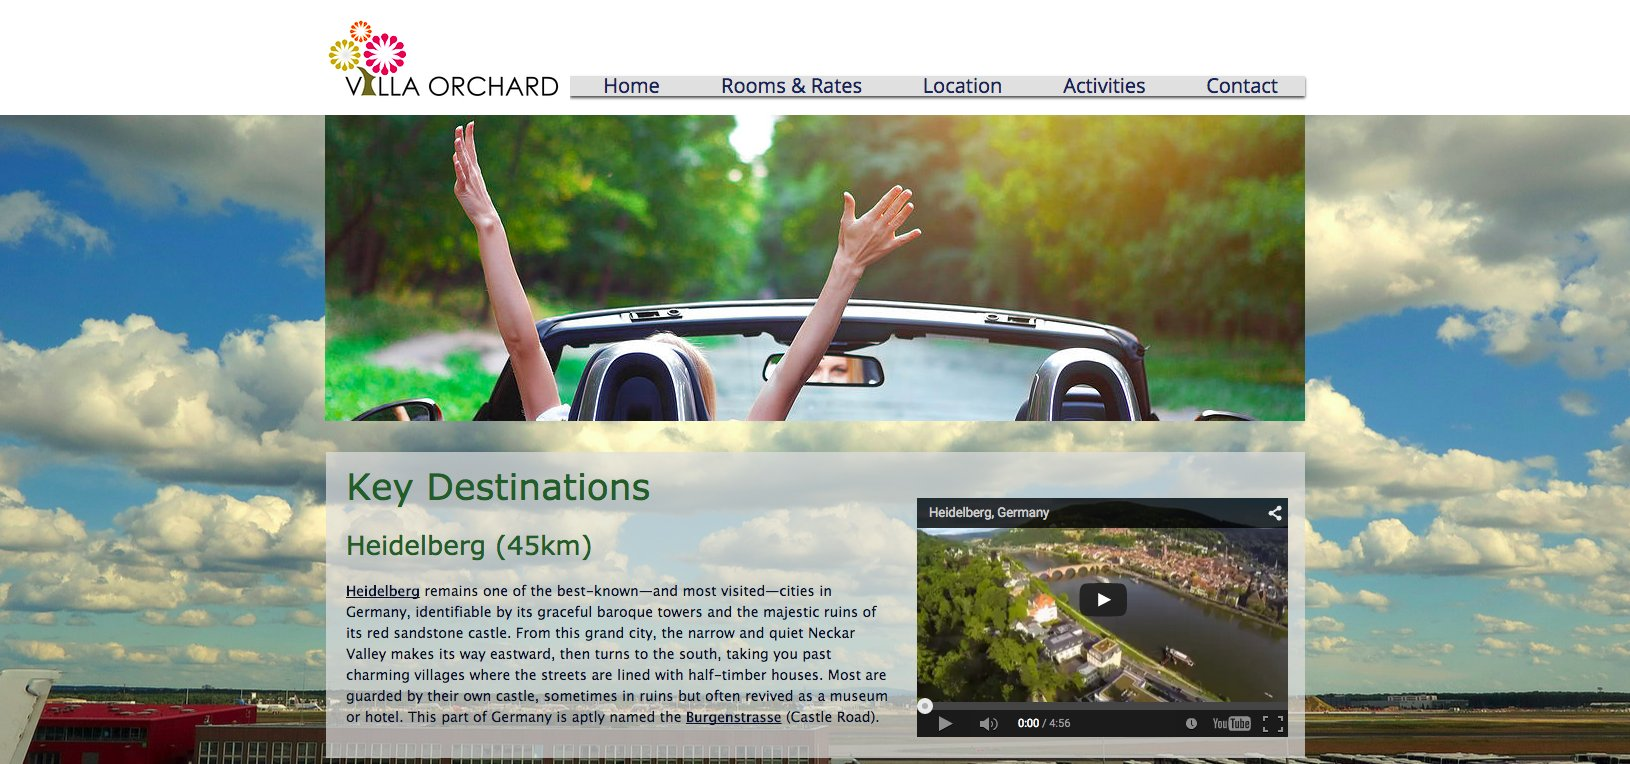 villa-orchard-destination-small-hotel-website-design